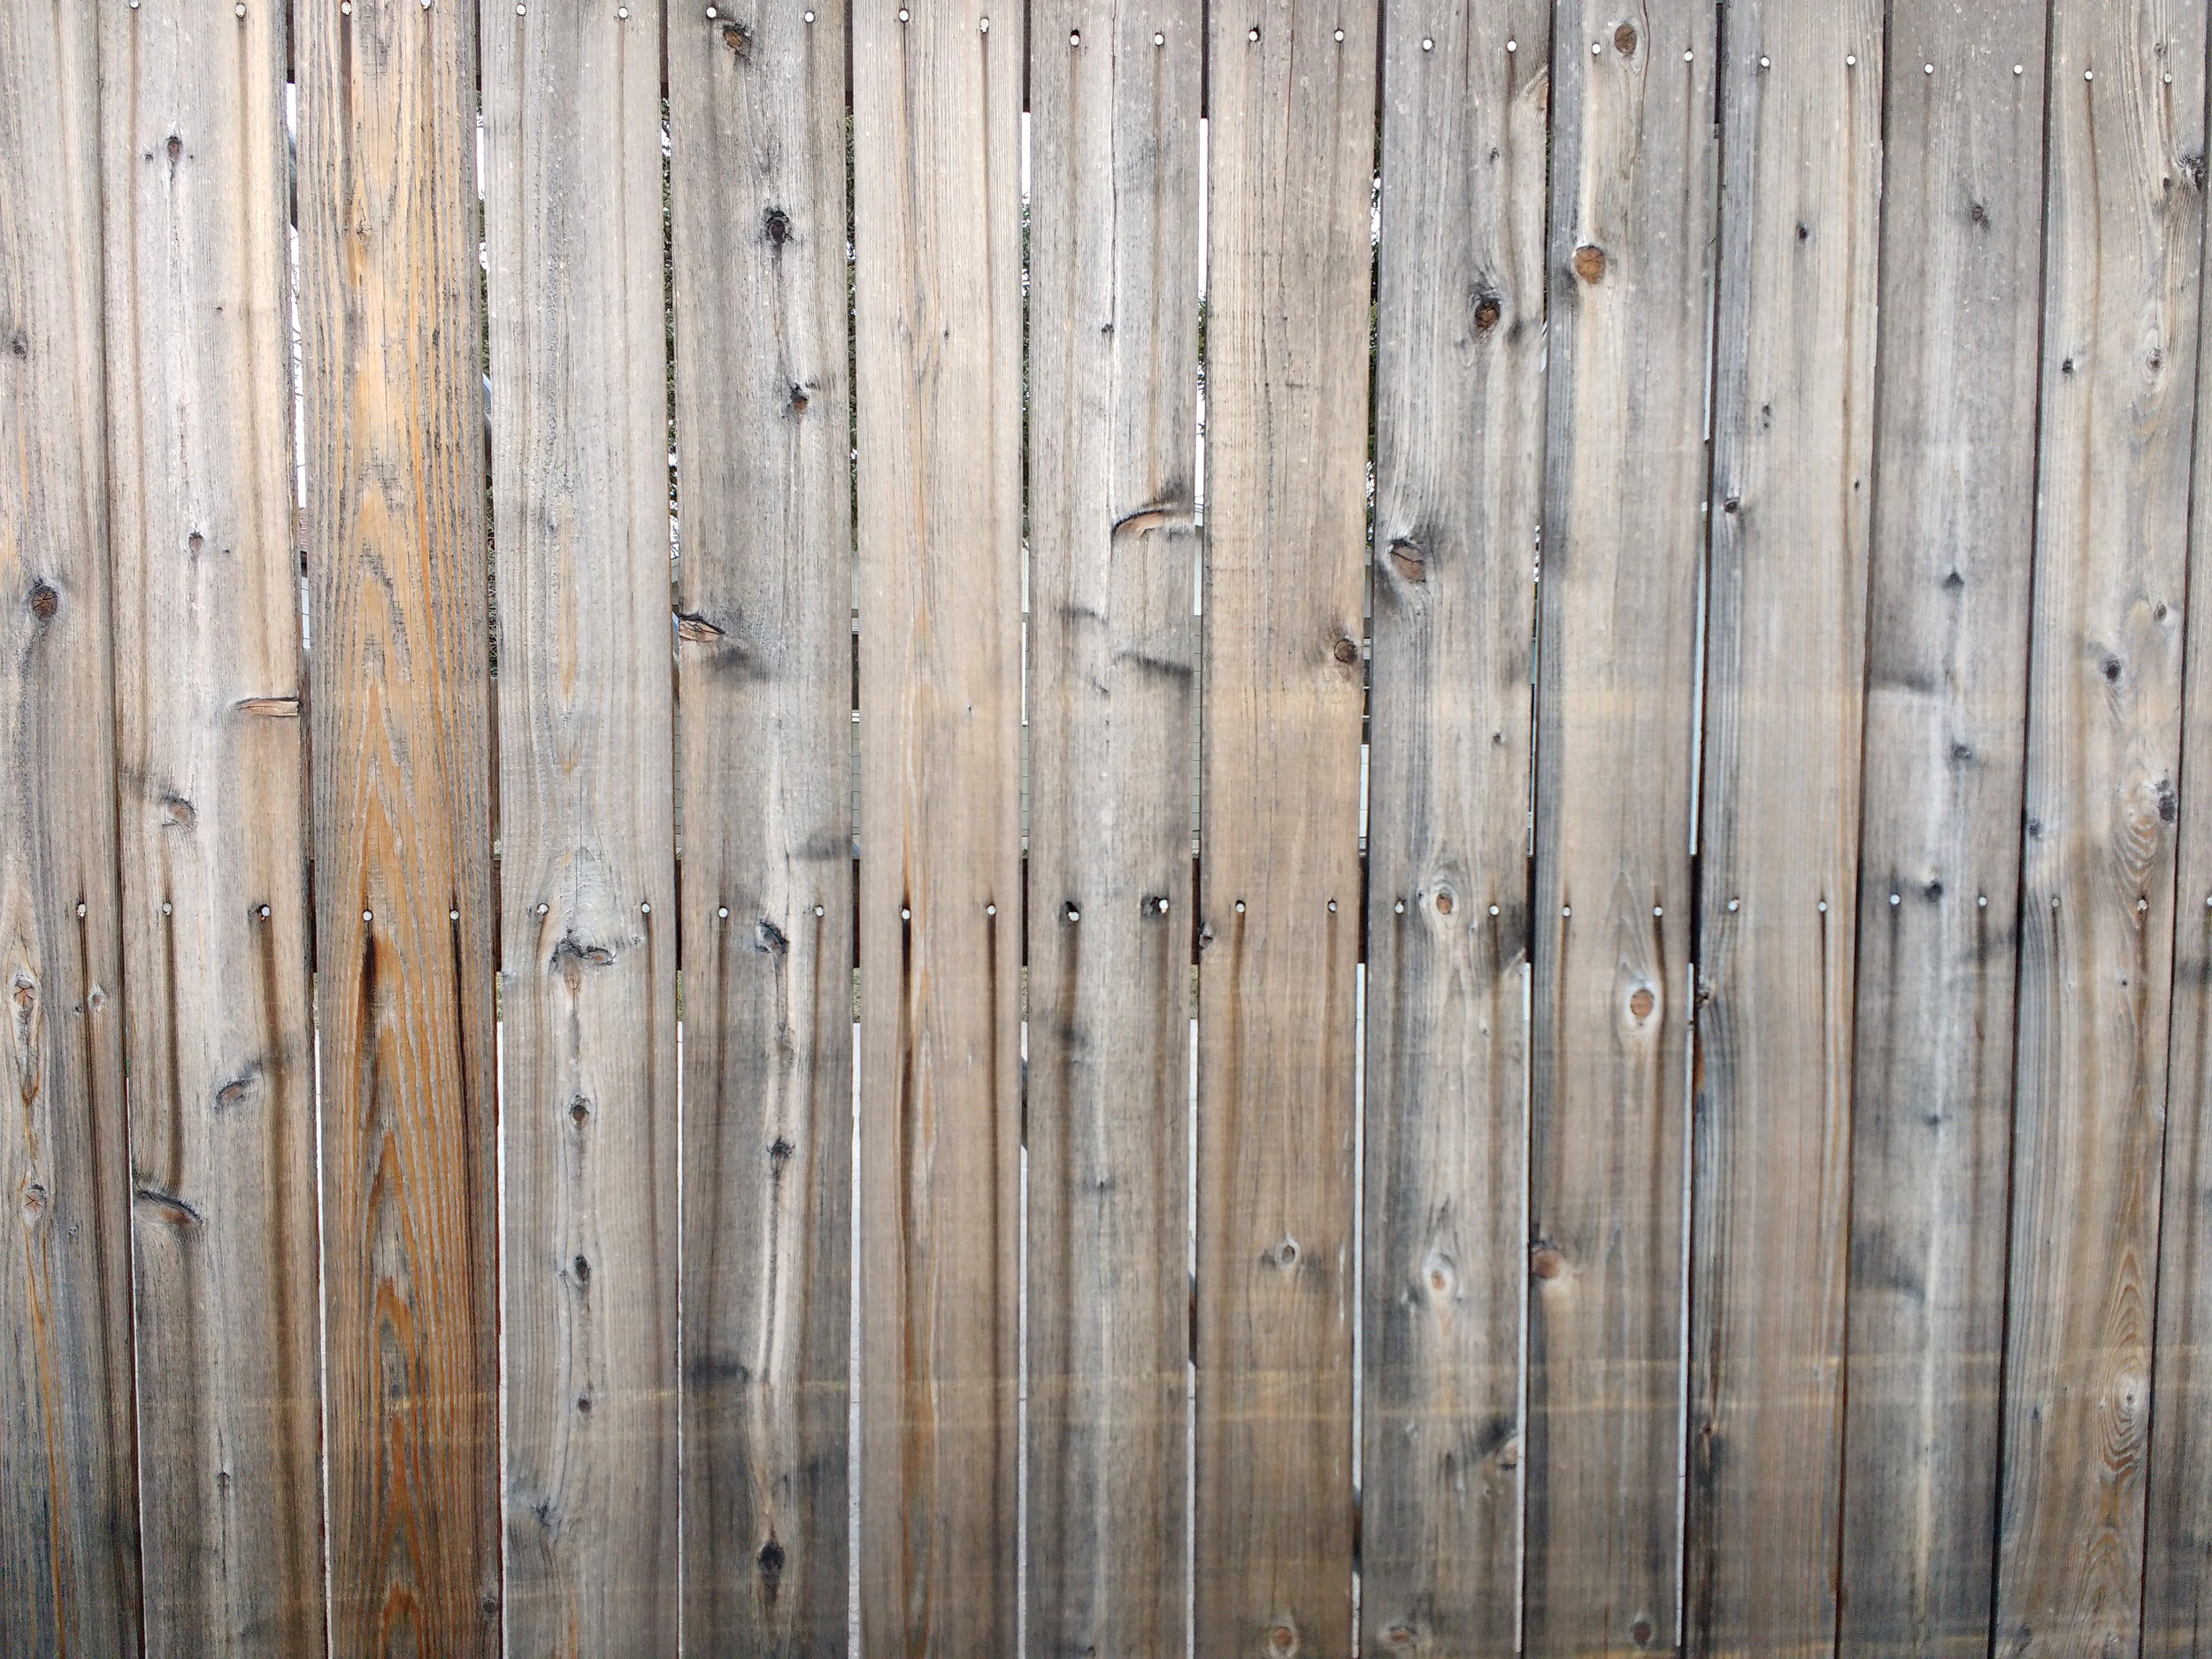 Galvanized nails dripping on cedar fence